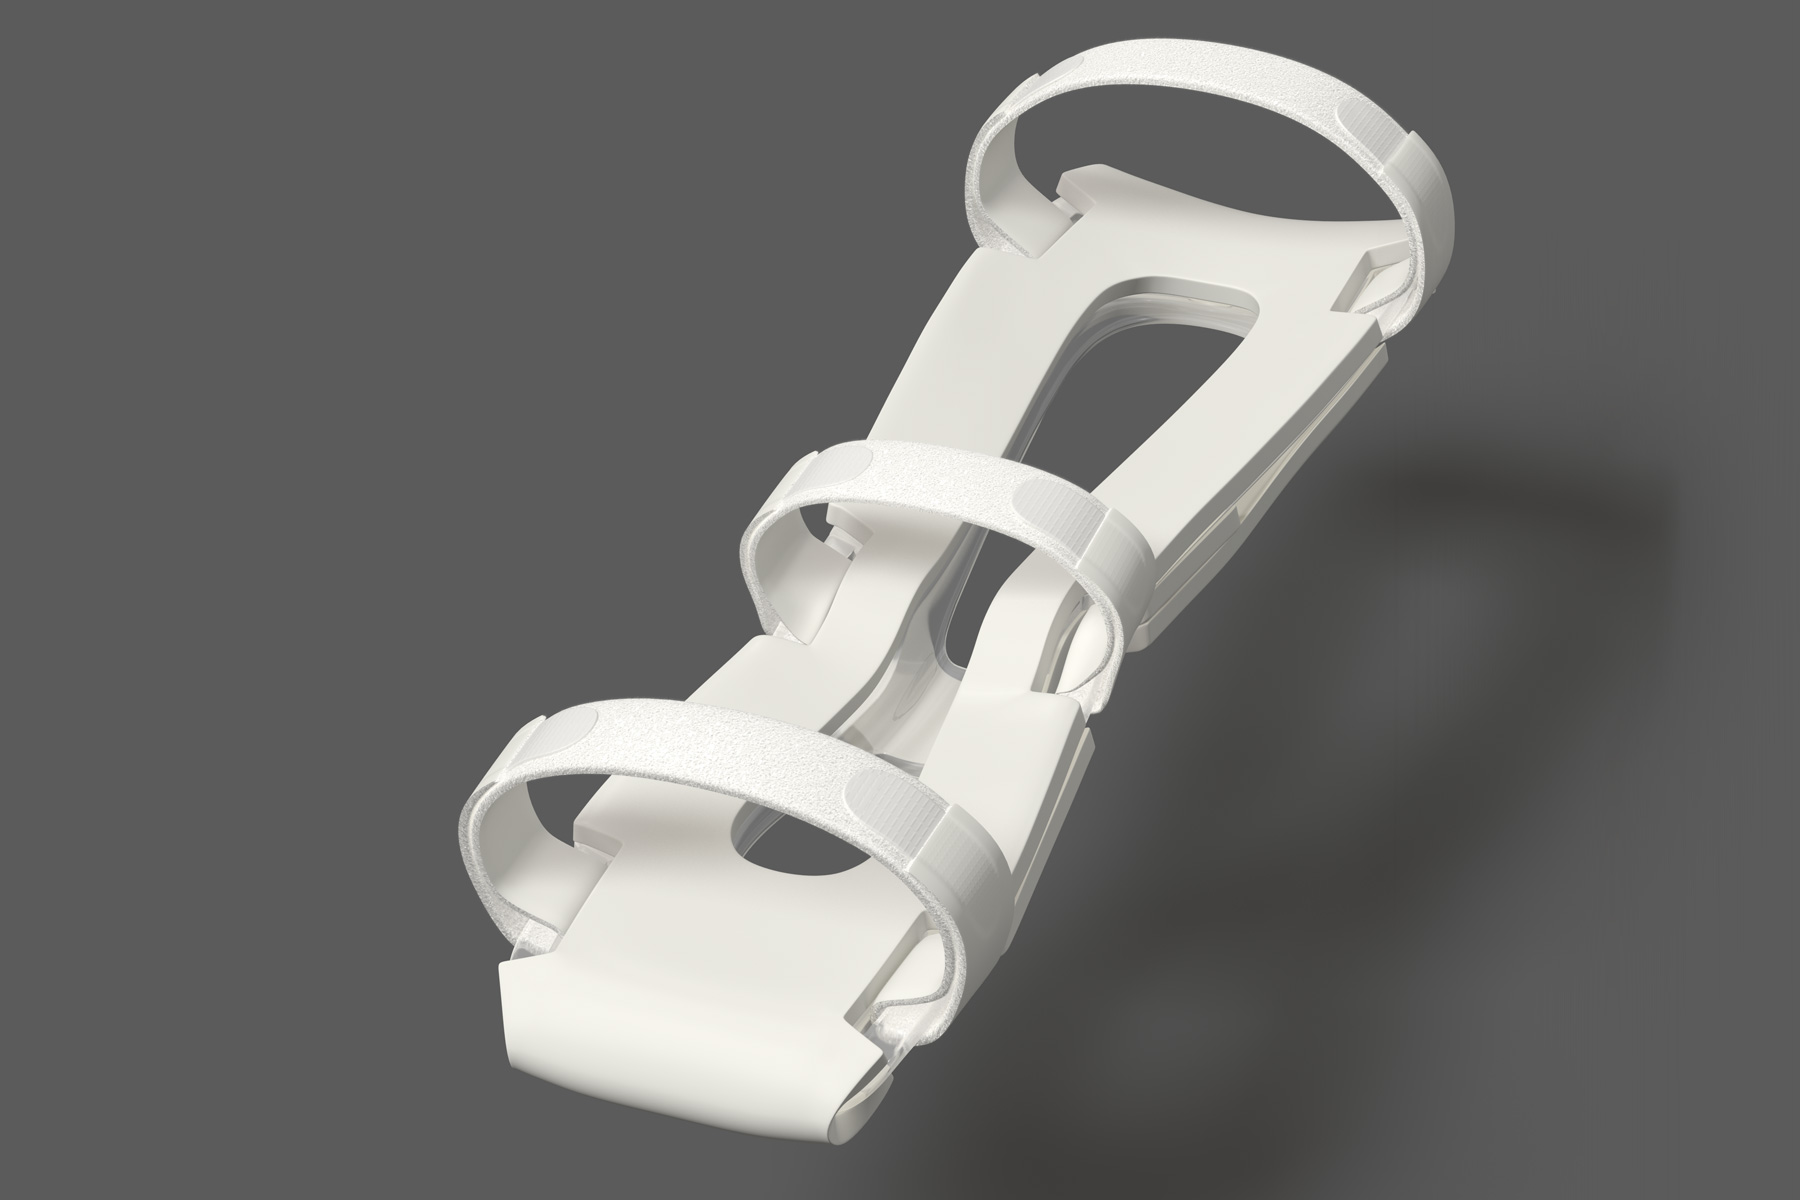 939-Ultra Wrist Splint with Straps